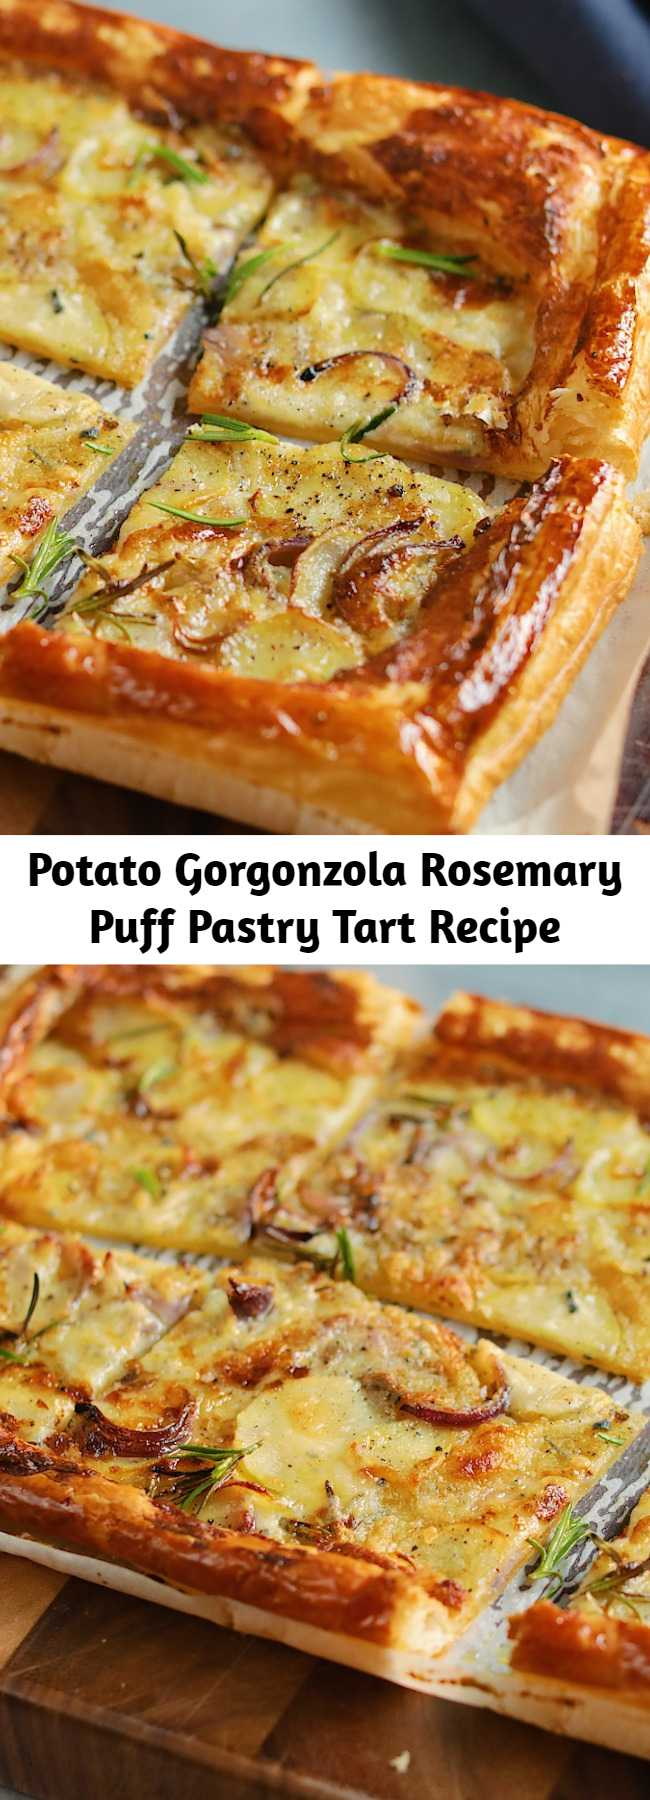 Potato Gorgonzola Rosemary Puff Pastry Tart Recipe - Your weeknight dinners just got a whole lot more exciting.